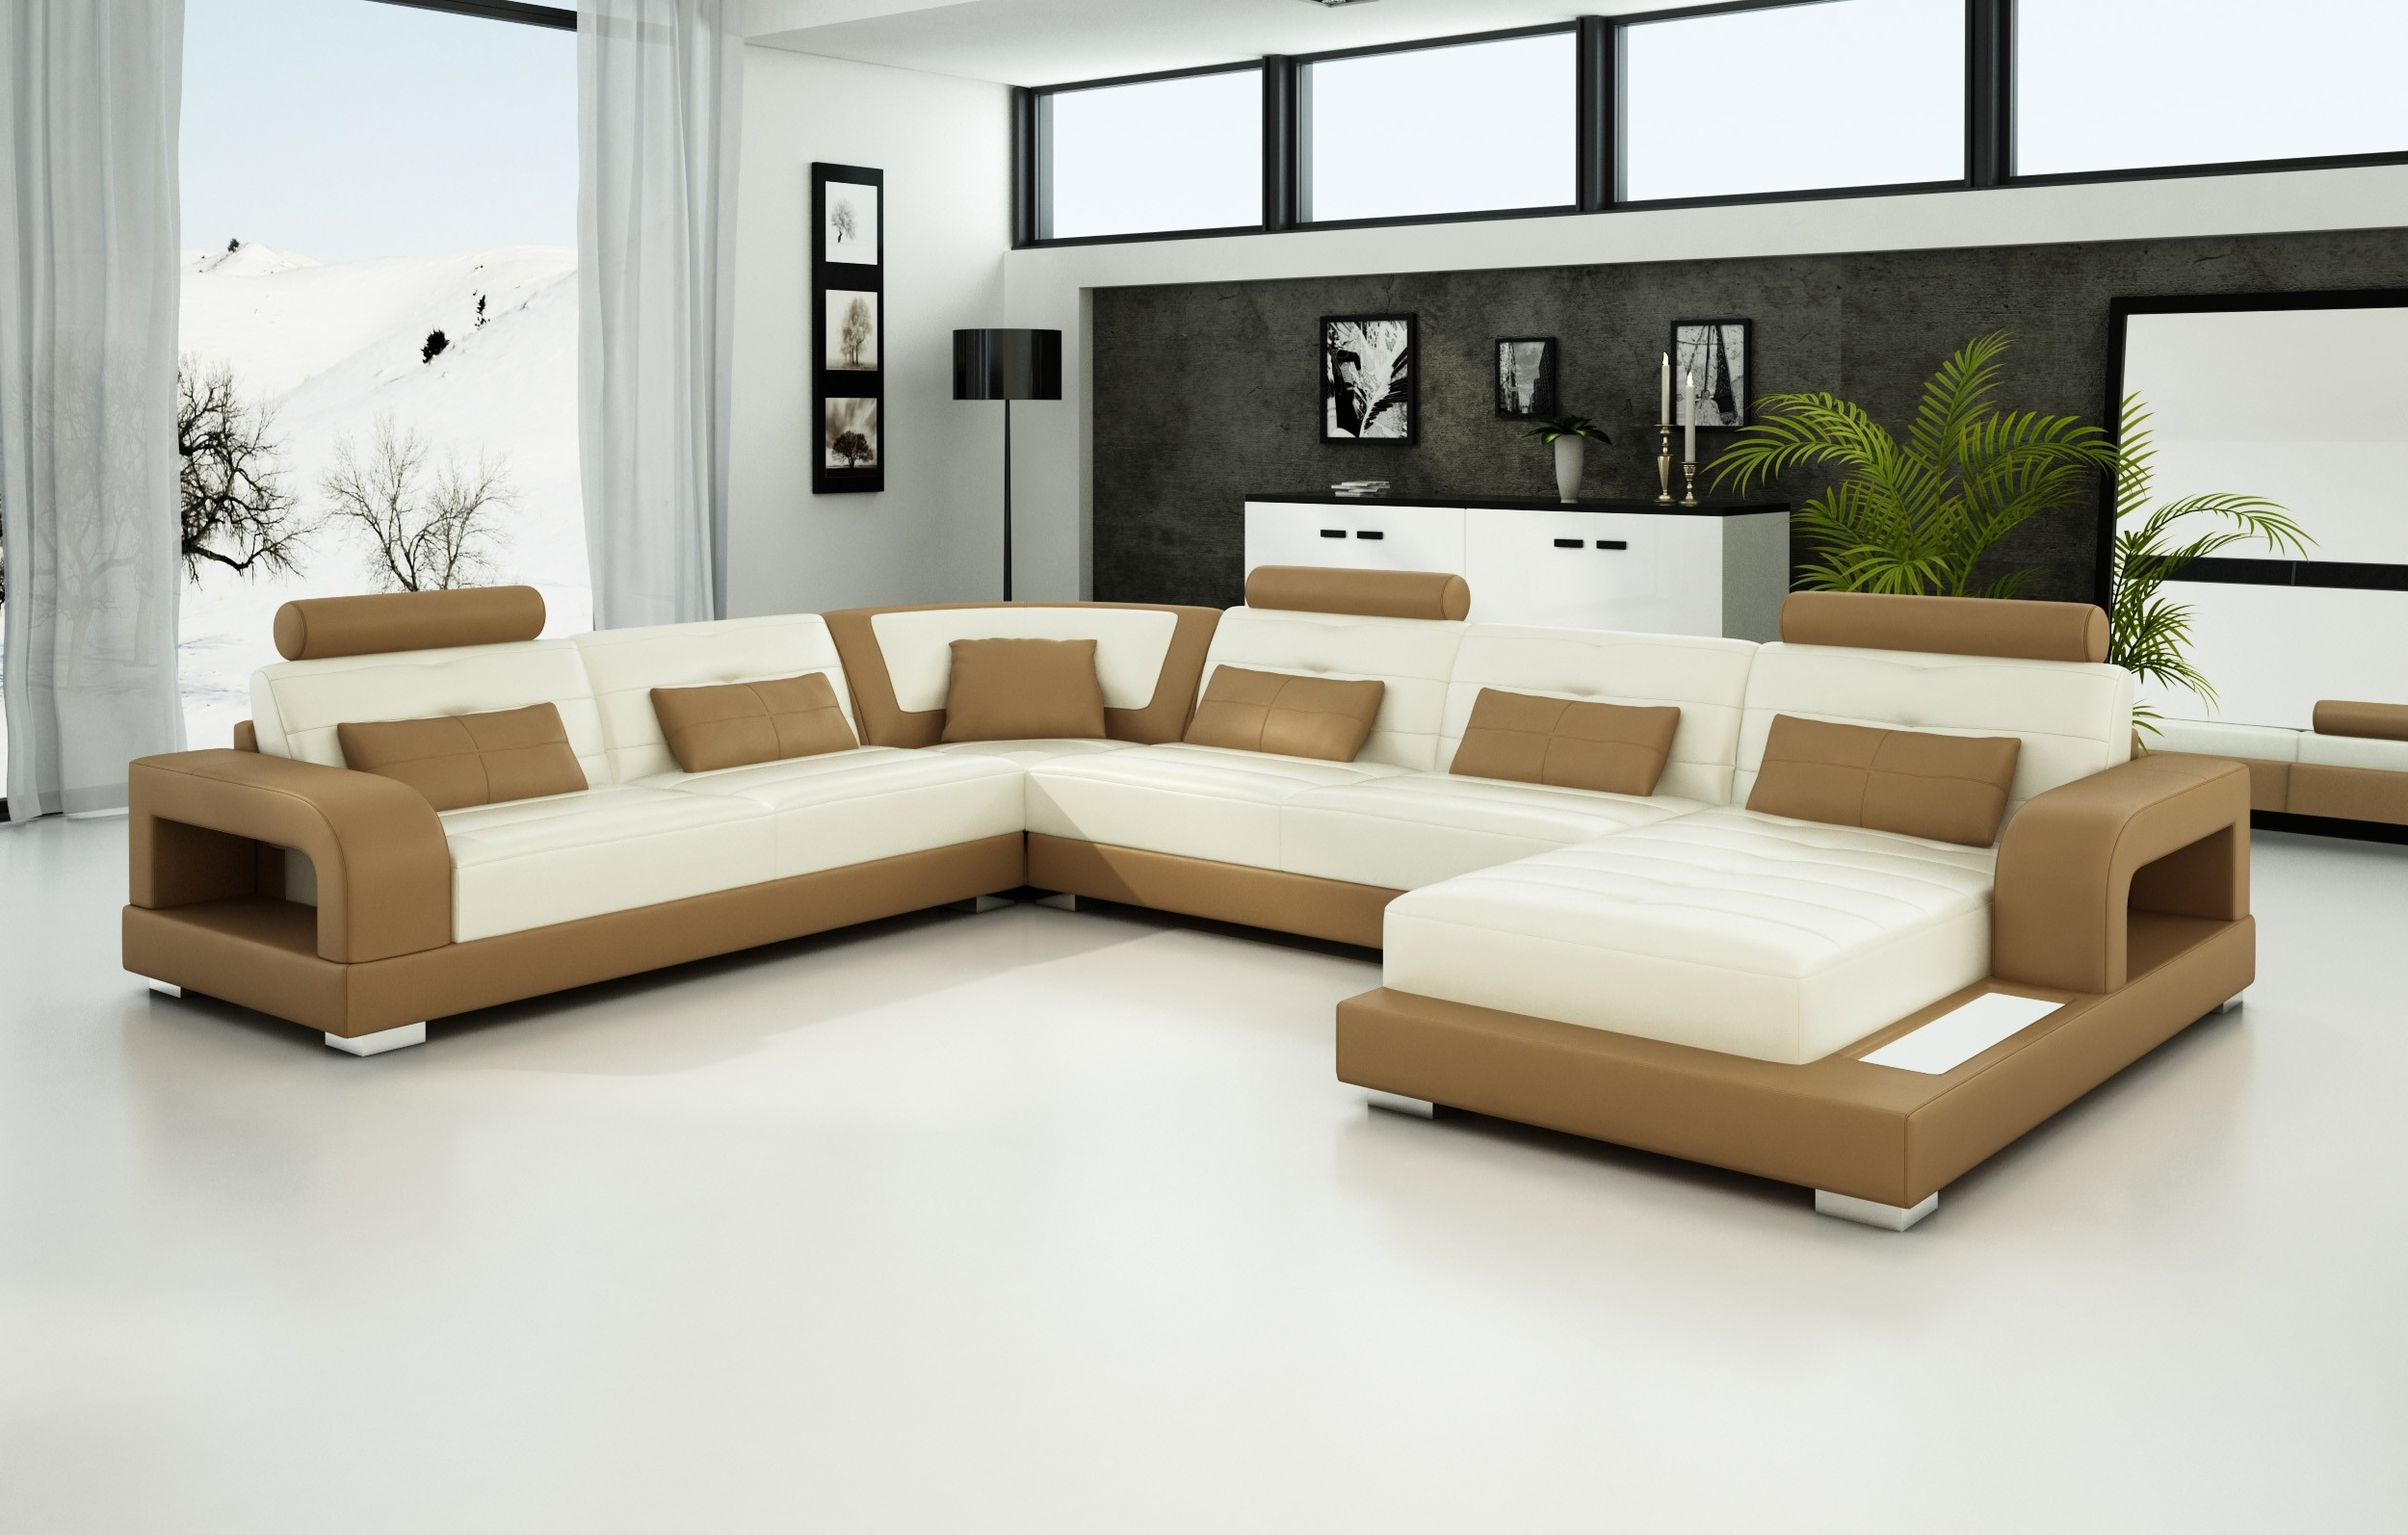 Olympian Sofas Pesaro Light Brown Leather Sofa – Sectional Sofas Intended For Well Known Trinidad And Tobago Sectional Sofas (View 6 of 20)